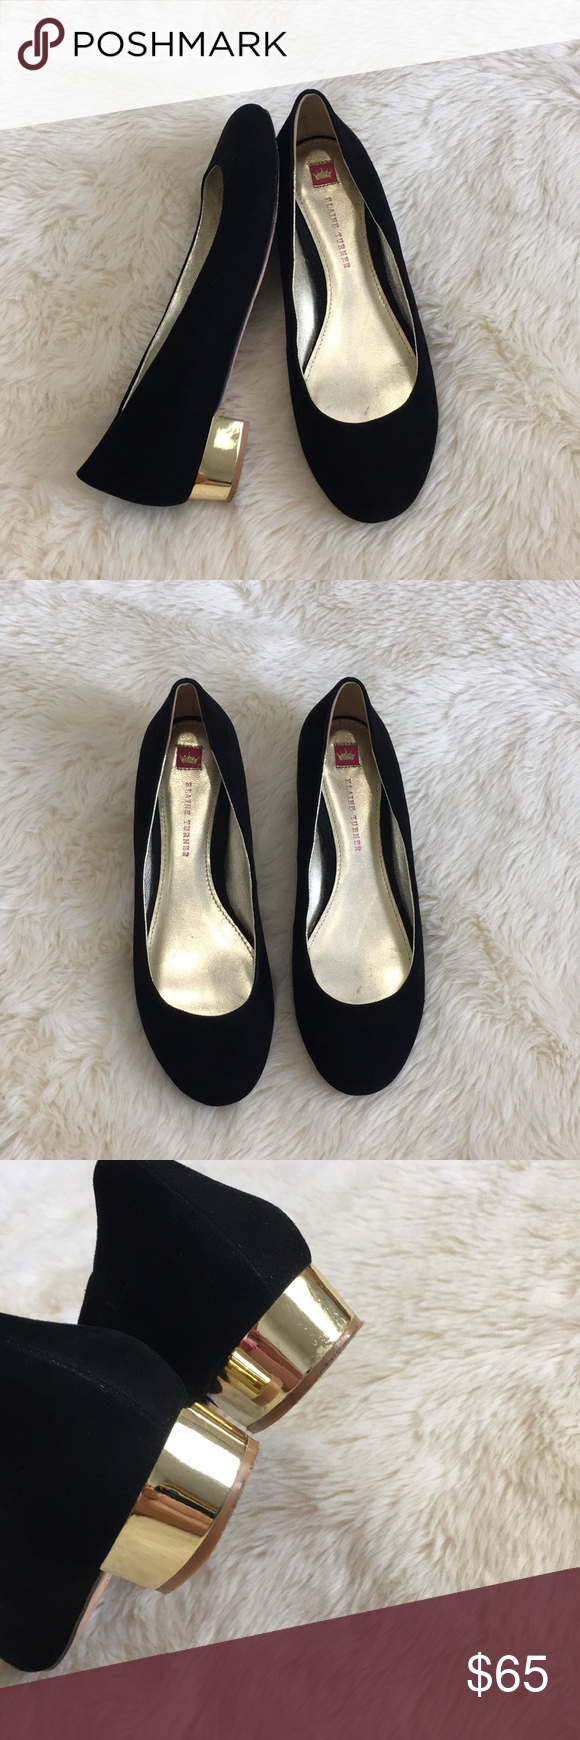 Elaine Turner Black Suede Shoe With Gold Heel Elegant Pair Of Black Rounded Toe Shoes With A 1 Gold Heel The Insi Black Suede Shoes Gold Heels Suede Shoes